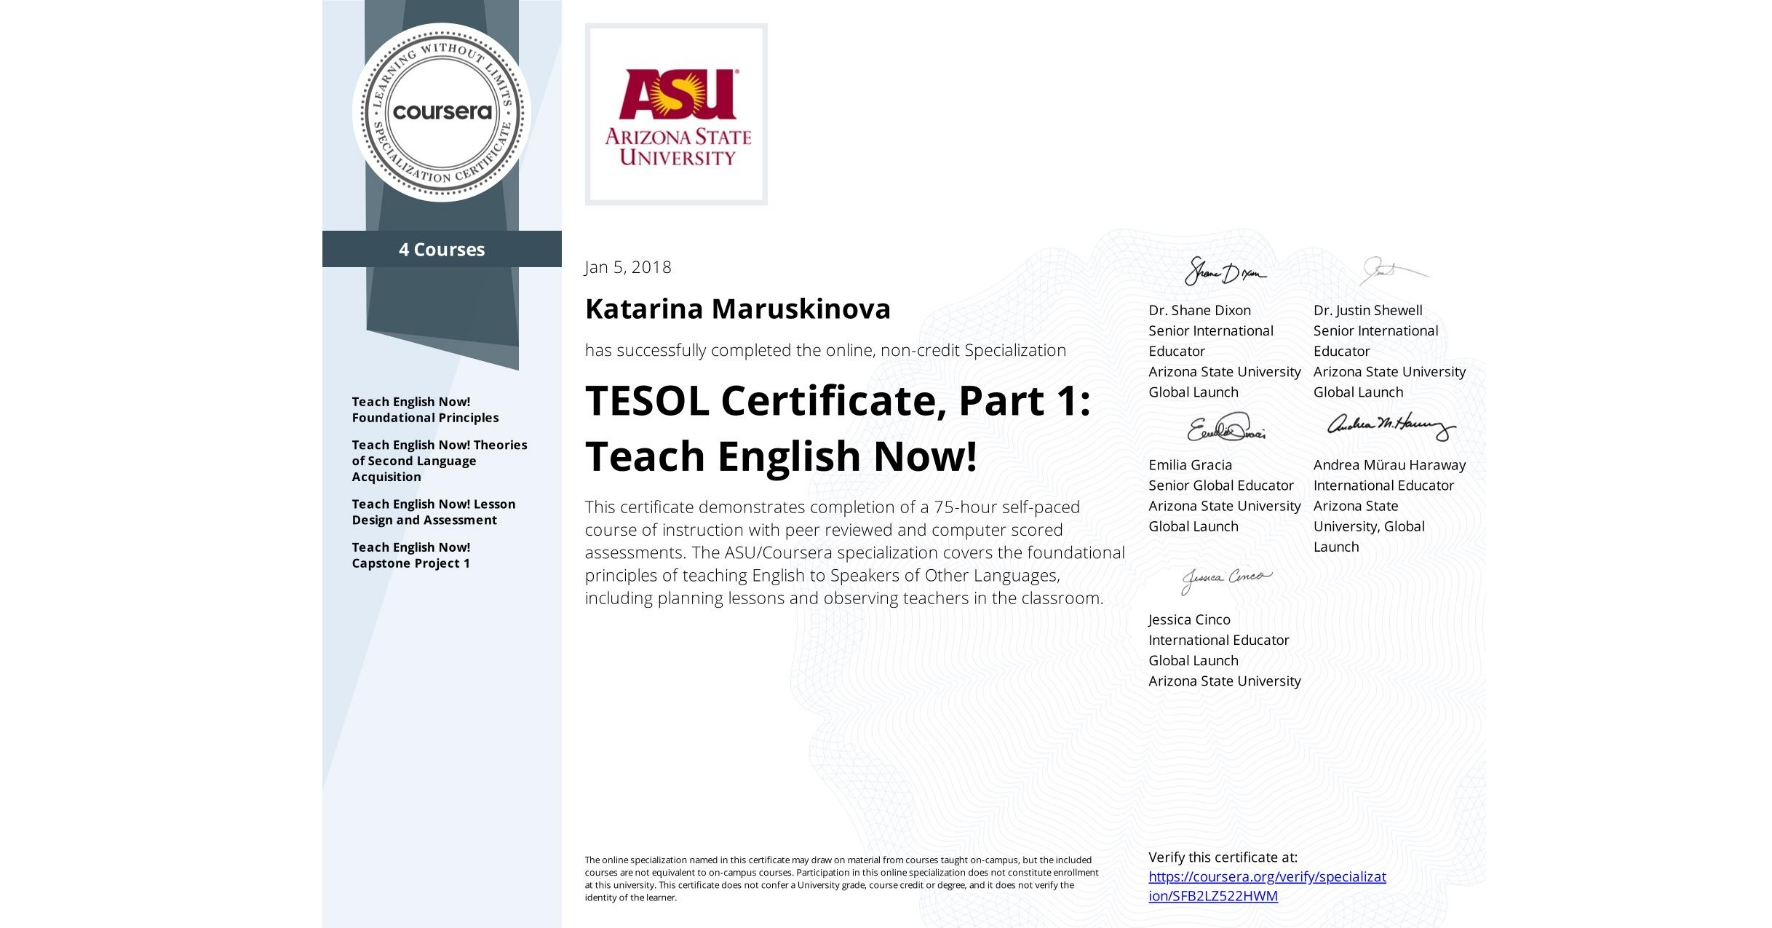 View certificate for Katarina Maruskinova, TESOL Certificate, Part 1: Teach English Now!, offered through Coursera. This certificate demonstrates completion of a 75-hour self-paced course of instruction with peer reviewed and computer scored assessments.  The ASU/Coursera specialization covers the foundational principles of teaching English to Speakers of Other Languages, including planning lessons and observing teachers in the classroom.